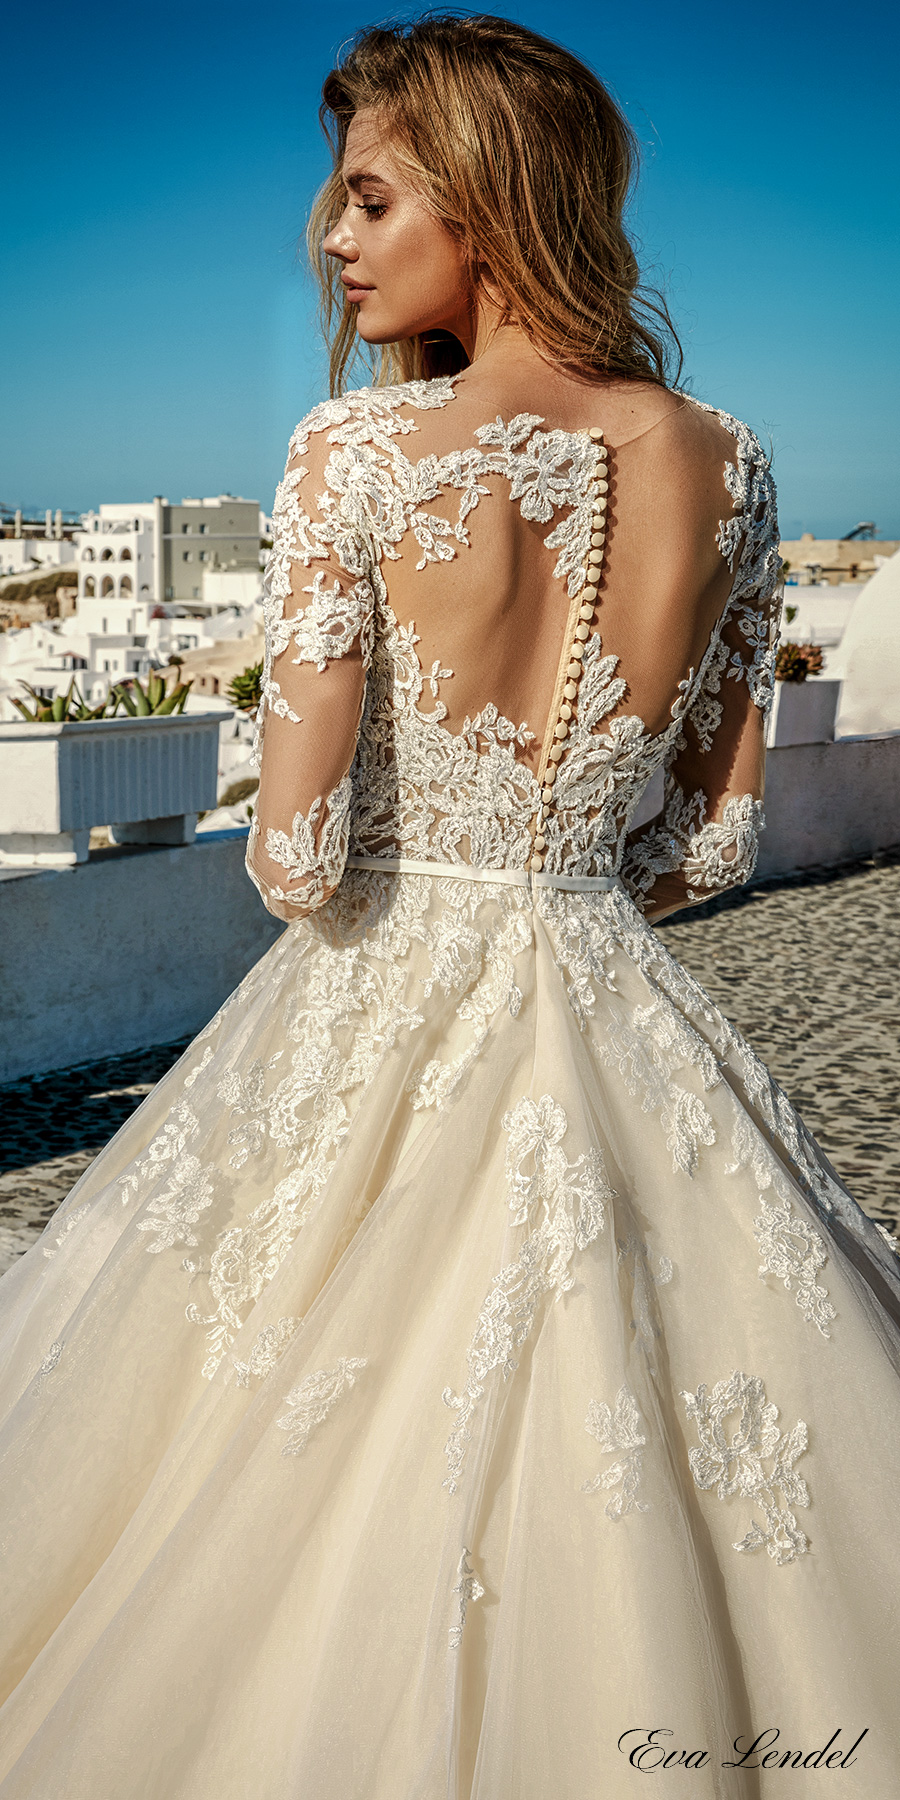 eva lendel 2017 bridal long sleeves v neck heavily embellished bodice romantic princess ivory a line wedding dress illusion lace back chapel train (allen) zbv